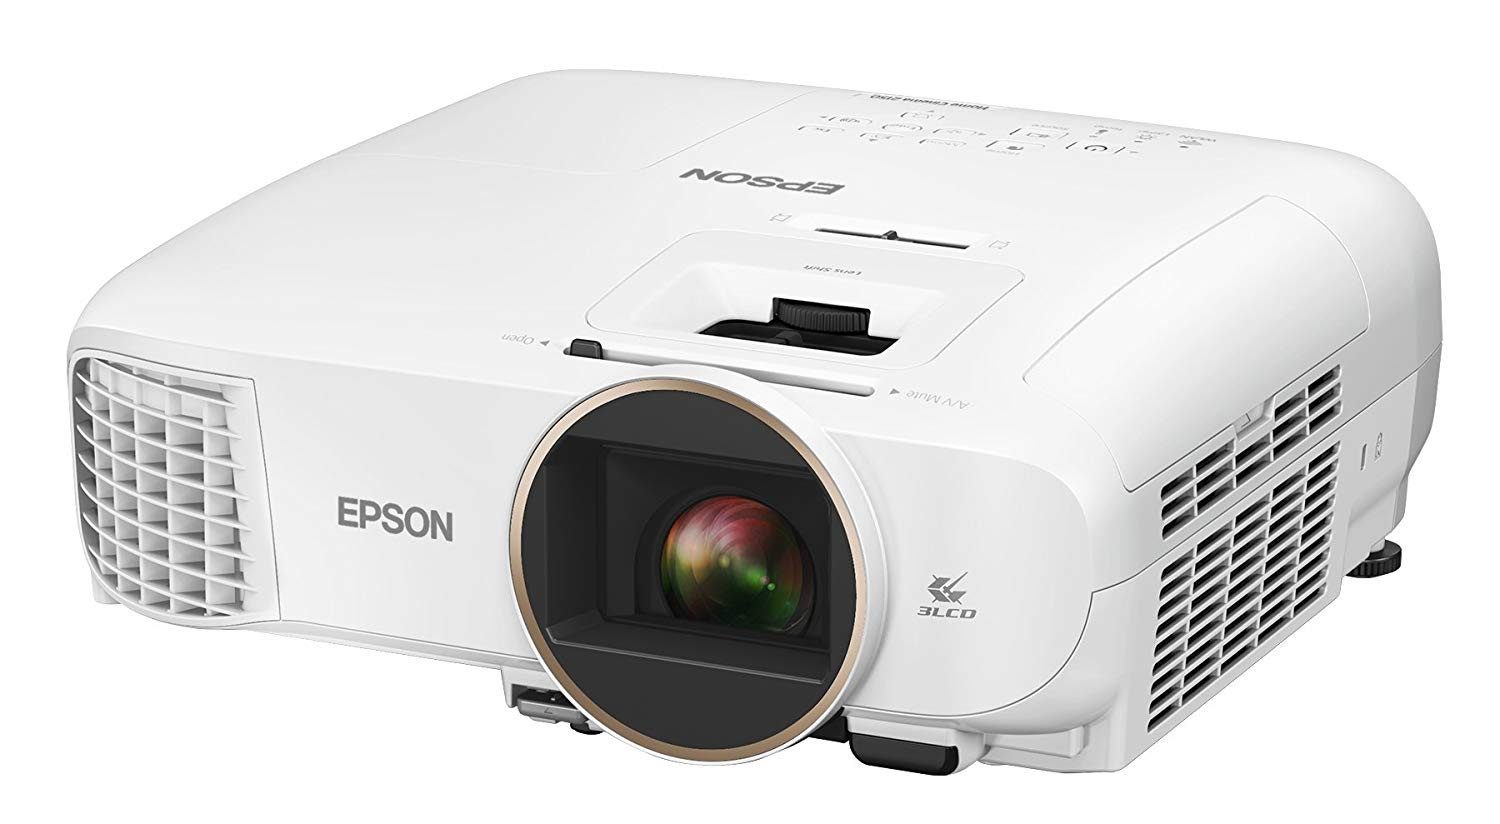 Epson Home Cinema 2150 Wireless 1080p Miracast, 3LCD projector